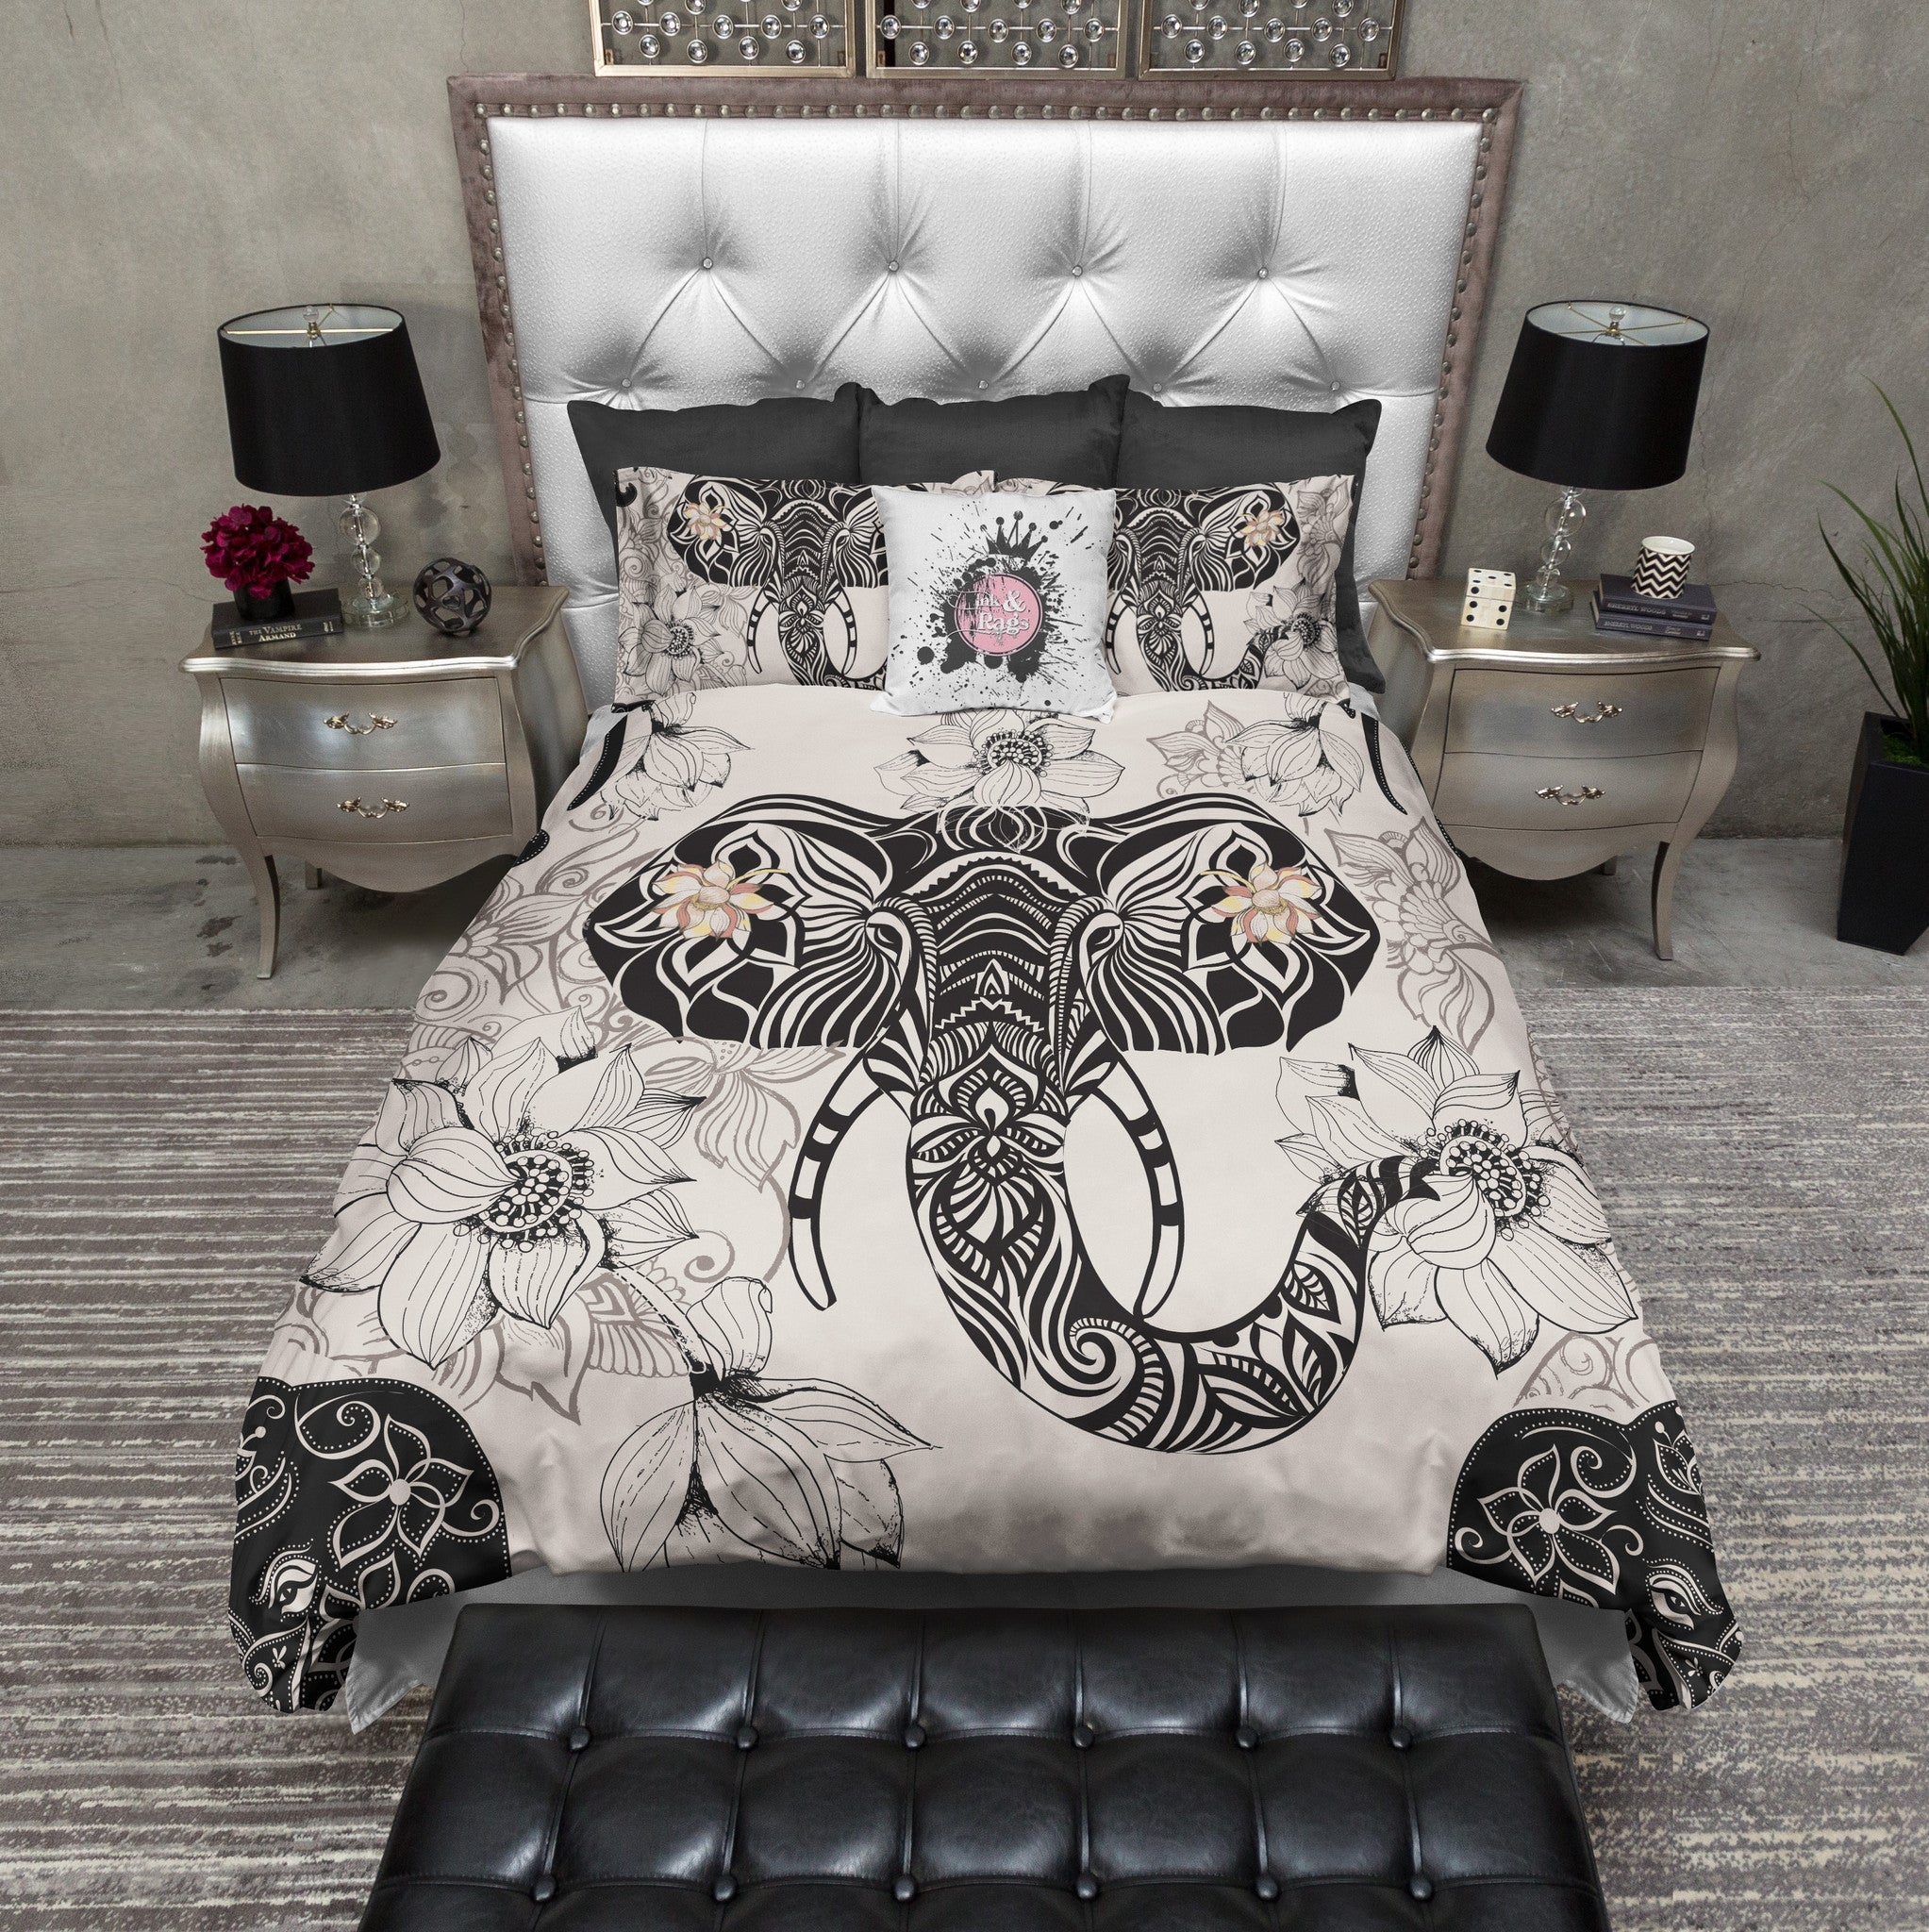 luna of medallion elephant ophelia yaella duvet circle twin etsy zihna mini galaxy and covers thinking pinstripe mesa urban blue coral teal geo black modern raja petra xl magical outfitters cover tassel dhara size bedding set comforter full tent uk floral duvets devi